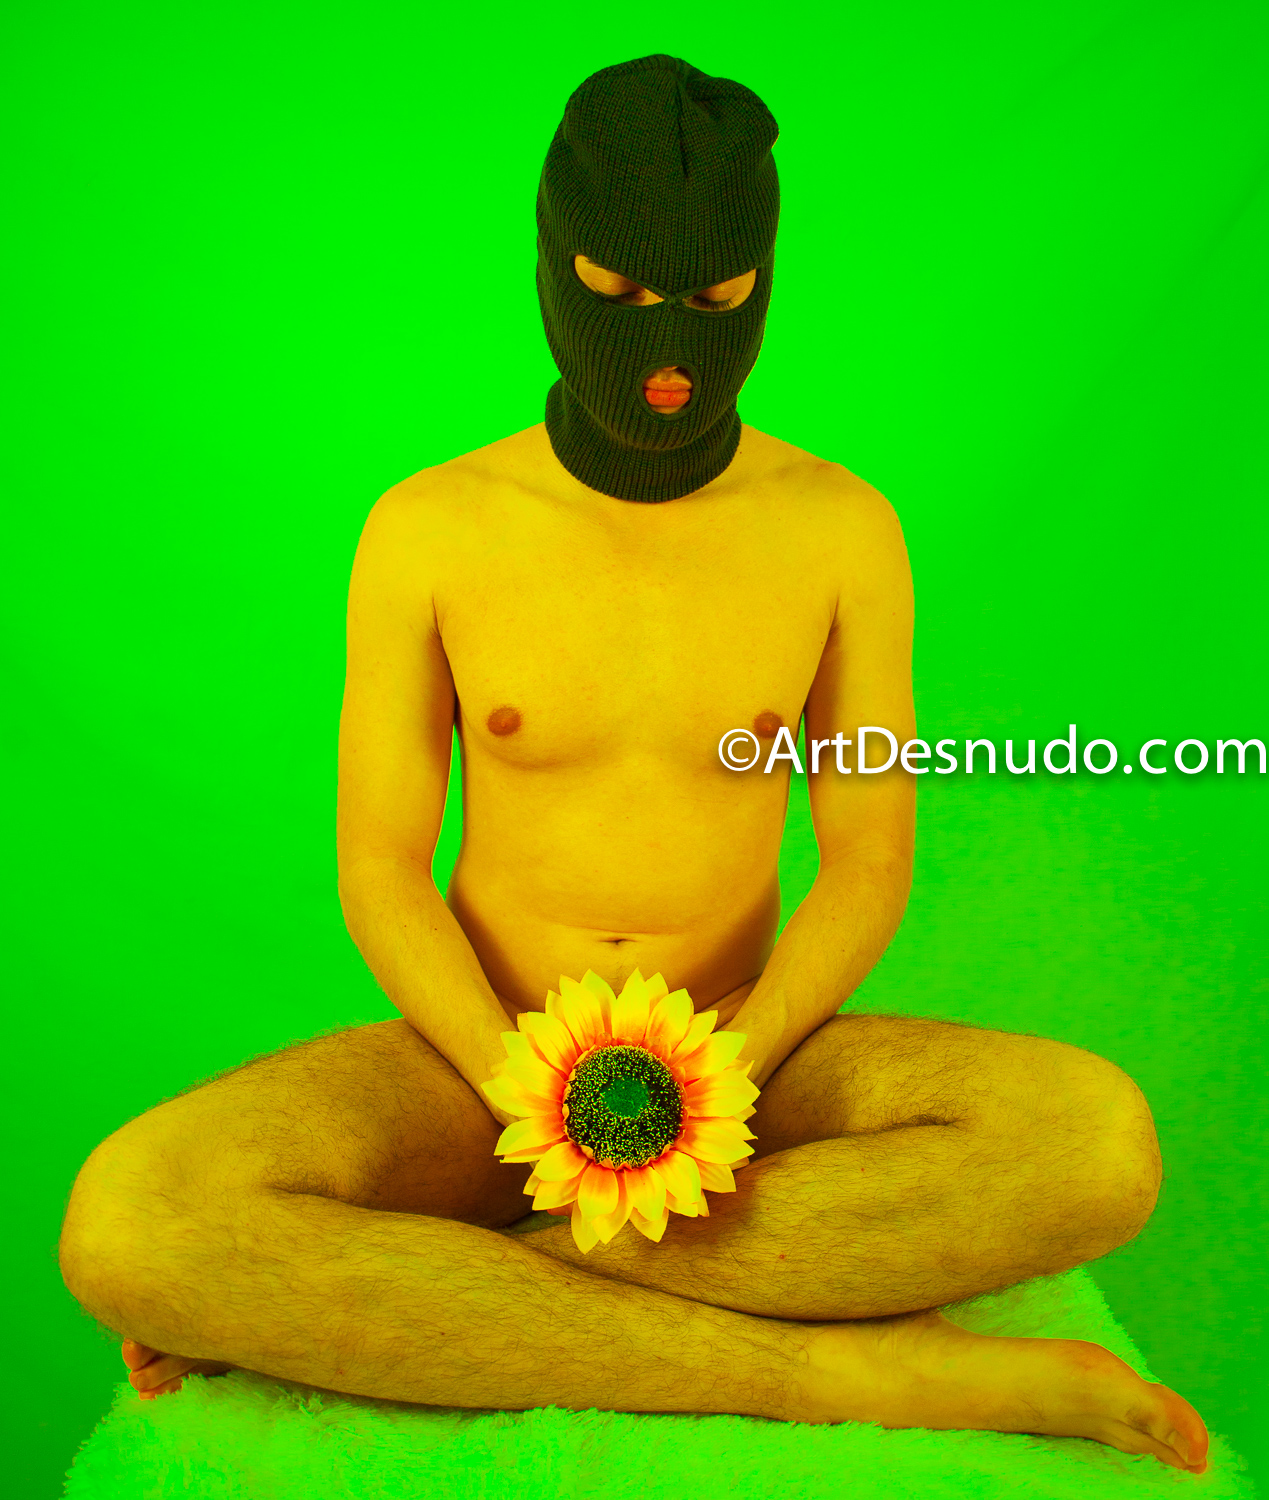 Artistic nude photographer / visual artist in New York City: Brooklyn, Staten Island, Queens, Bronx, Manhattan.